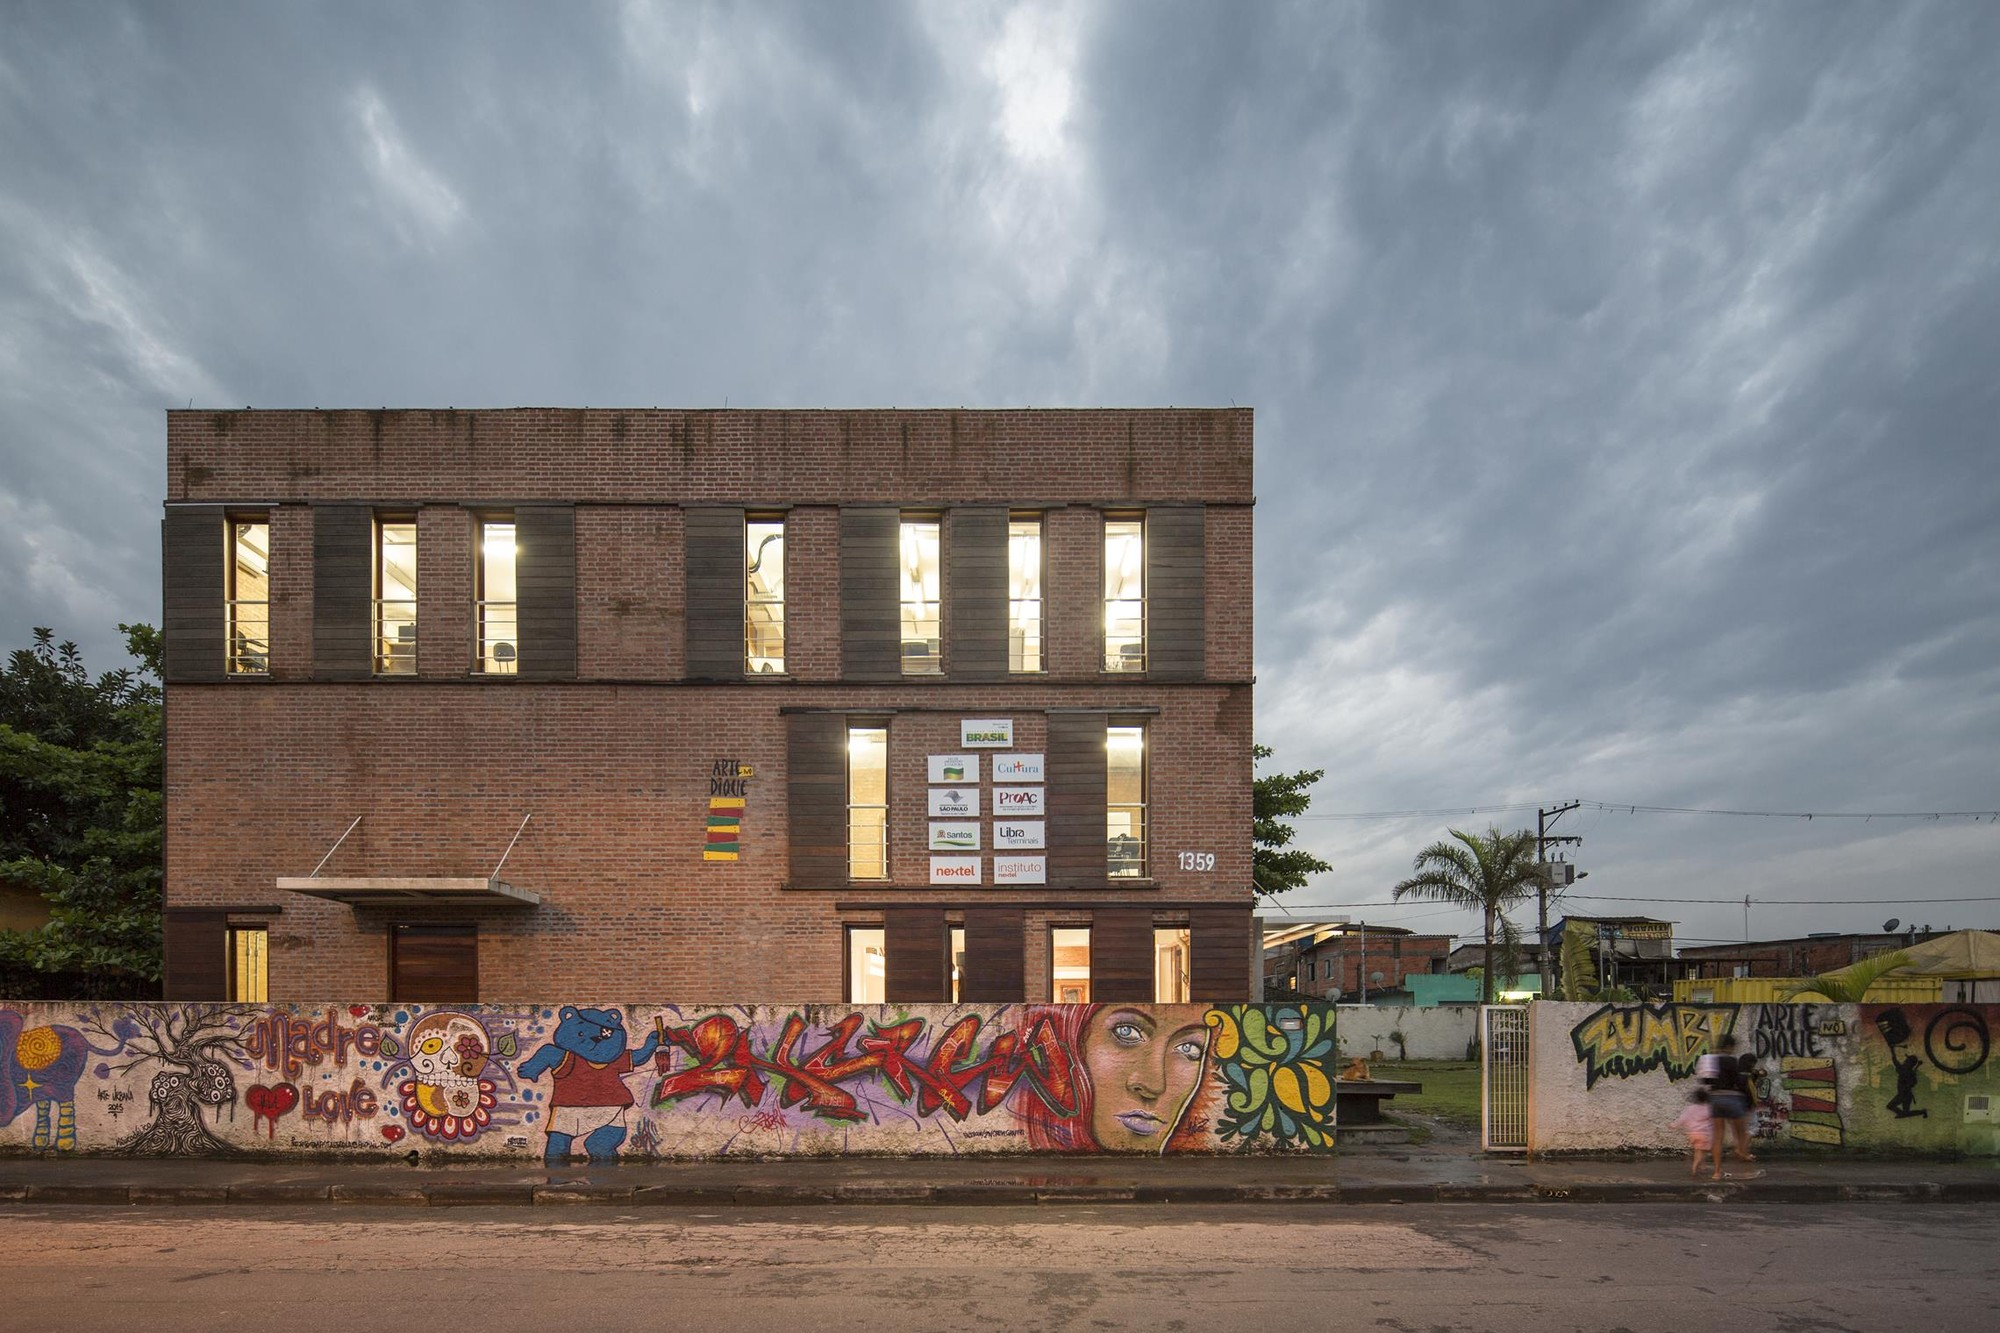 Cultural Warehouse for the Plínio Marcos School of Art and Culture / André Jost Mafra + Natasha Mendes Gabriel + Thaís Polydoro Ribeiro, © Joana França